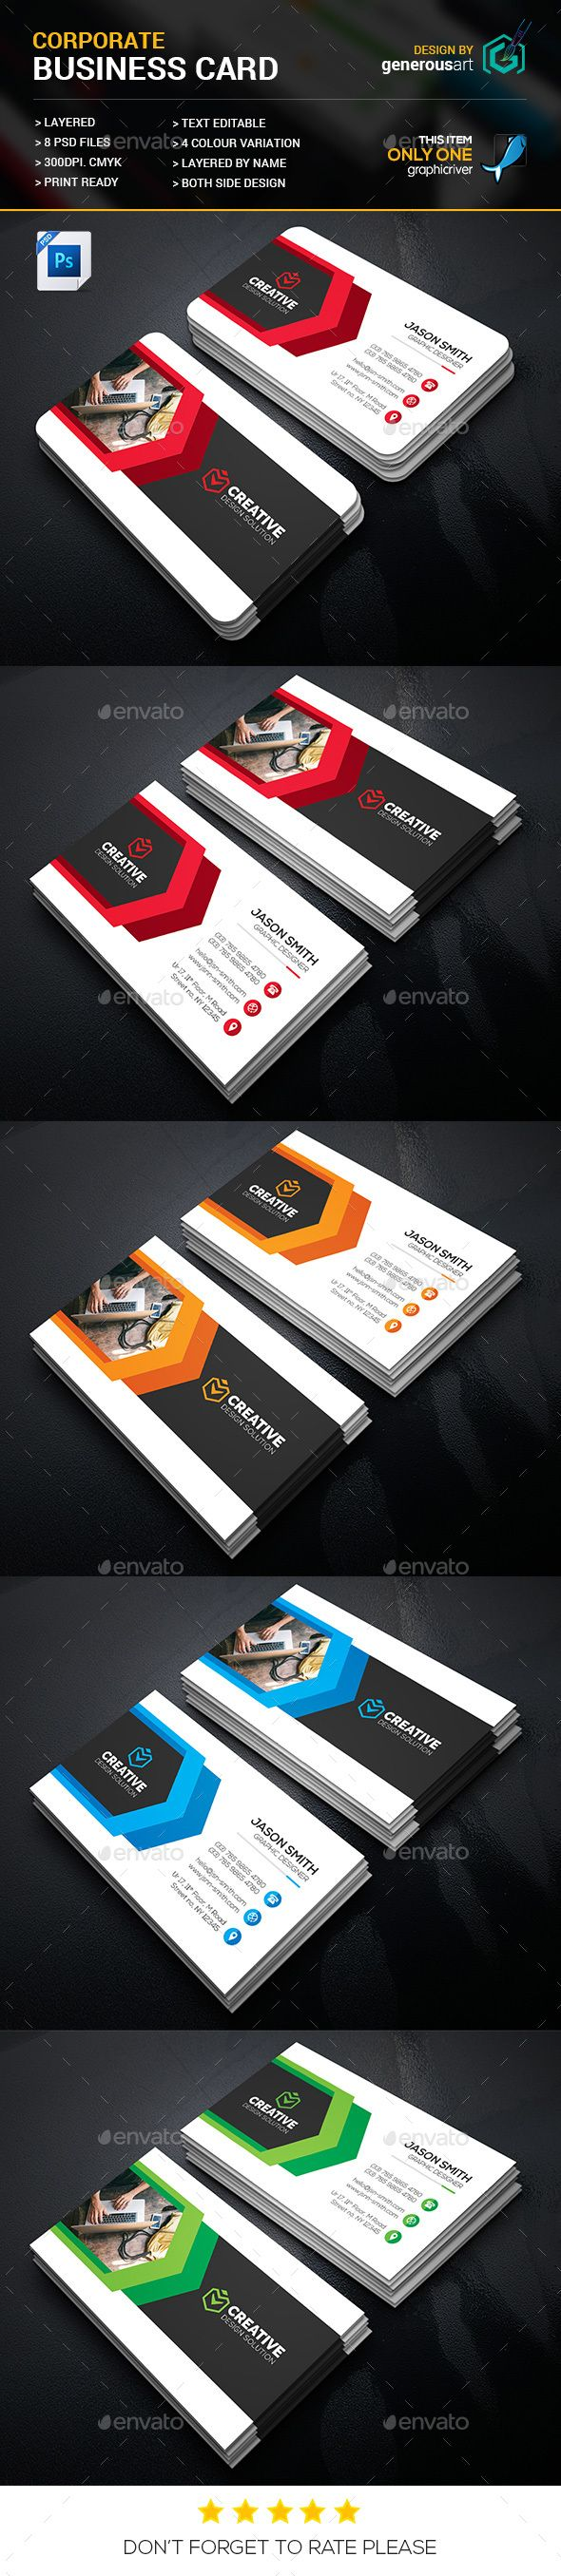 Best 25 corporate business ideas on pinterest cool powerpoint corporate business cards magicingreecefo Image collections